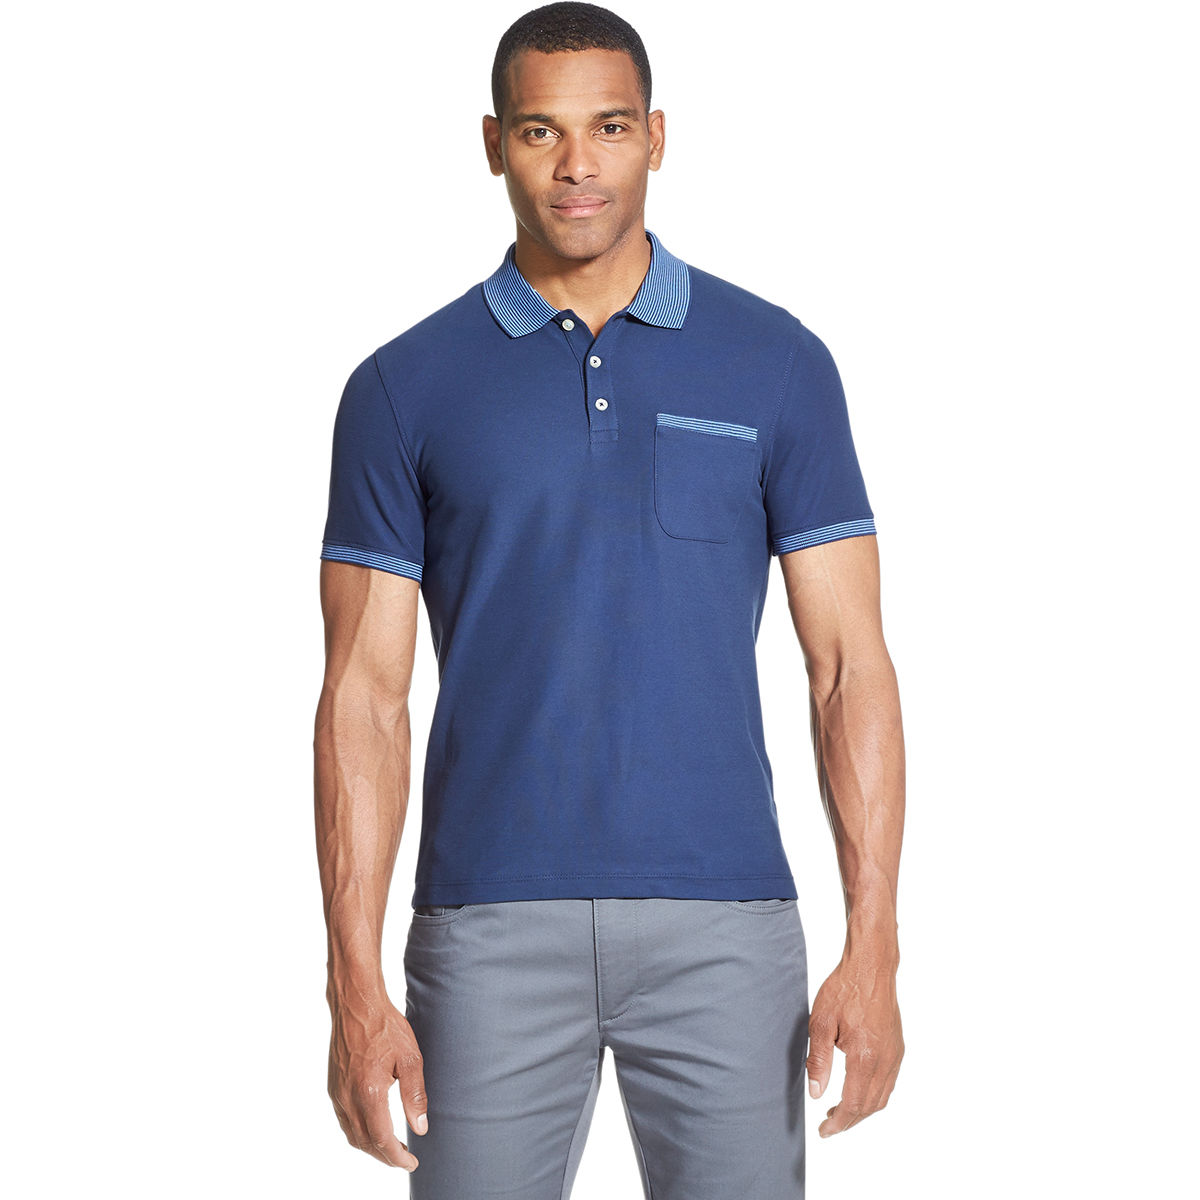 Van Heusen Men's Never Tuck Polo Shirt - Blue, M